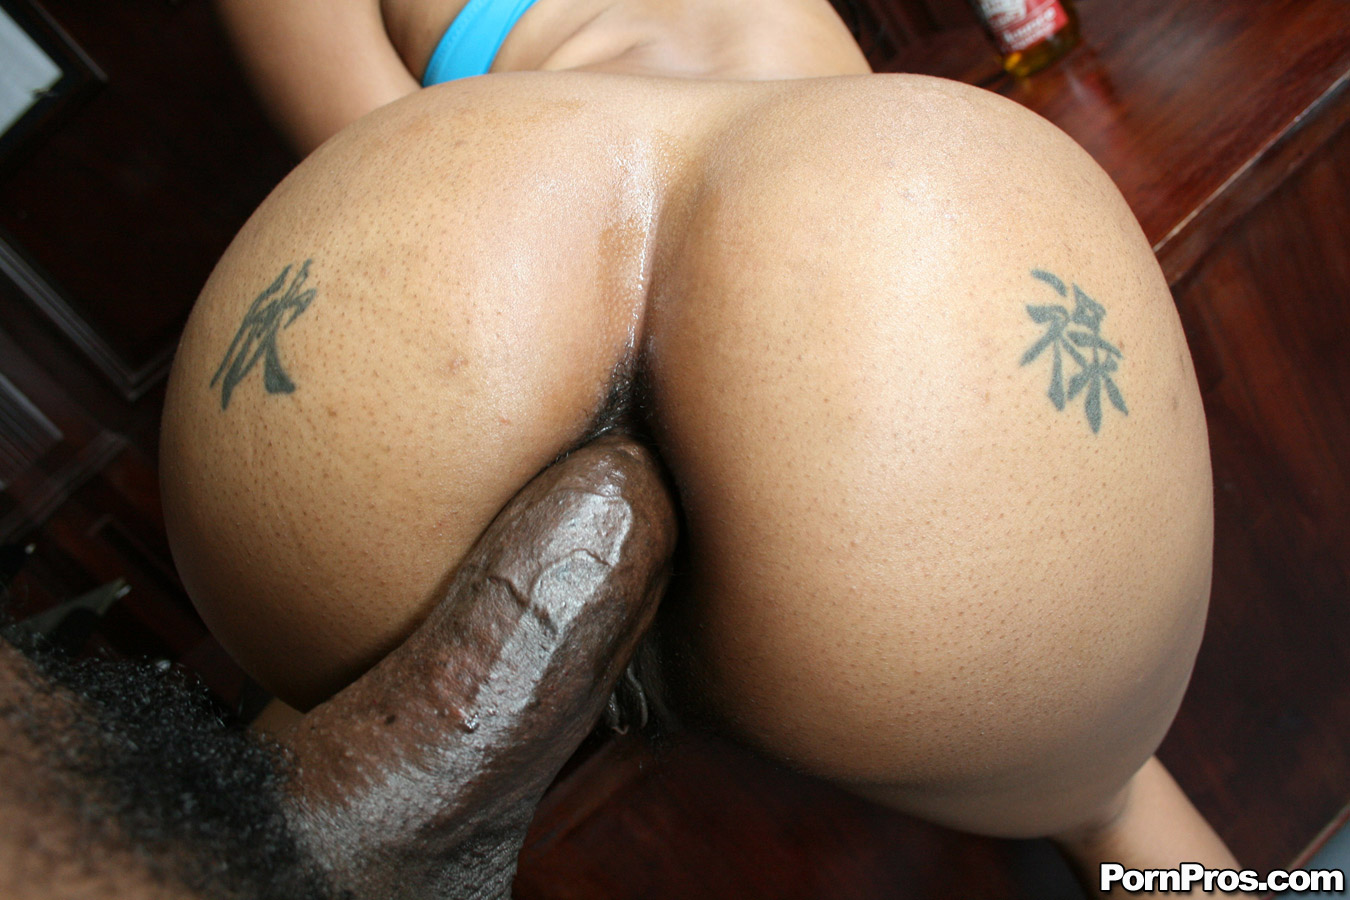 Big black cock in the ass